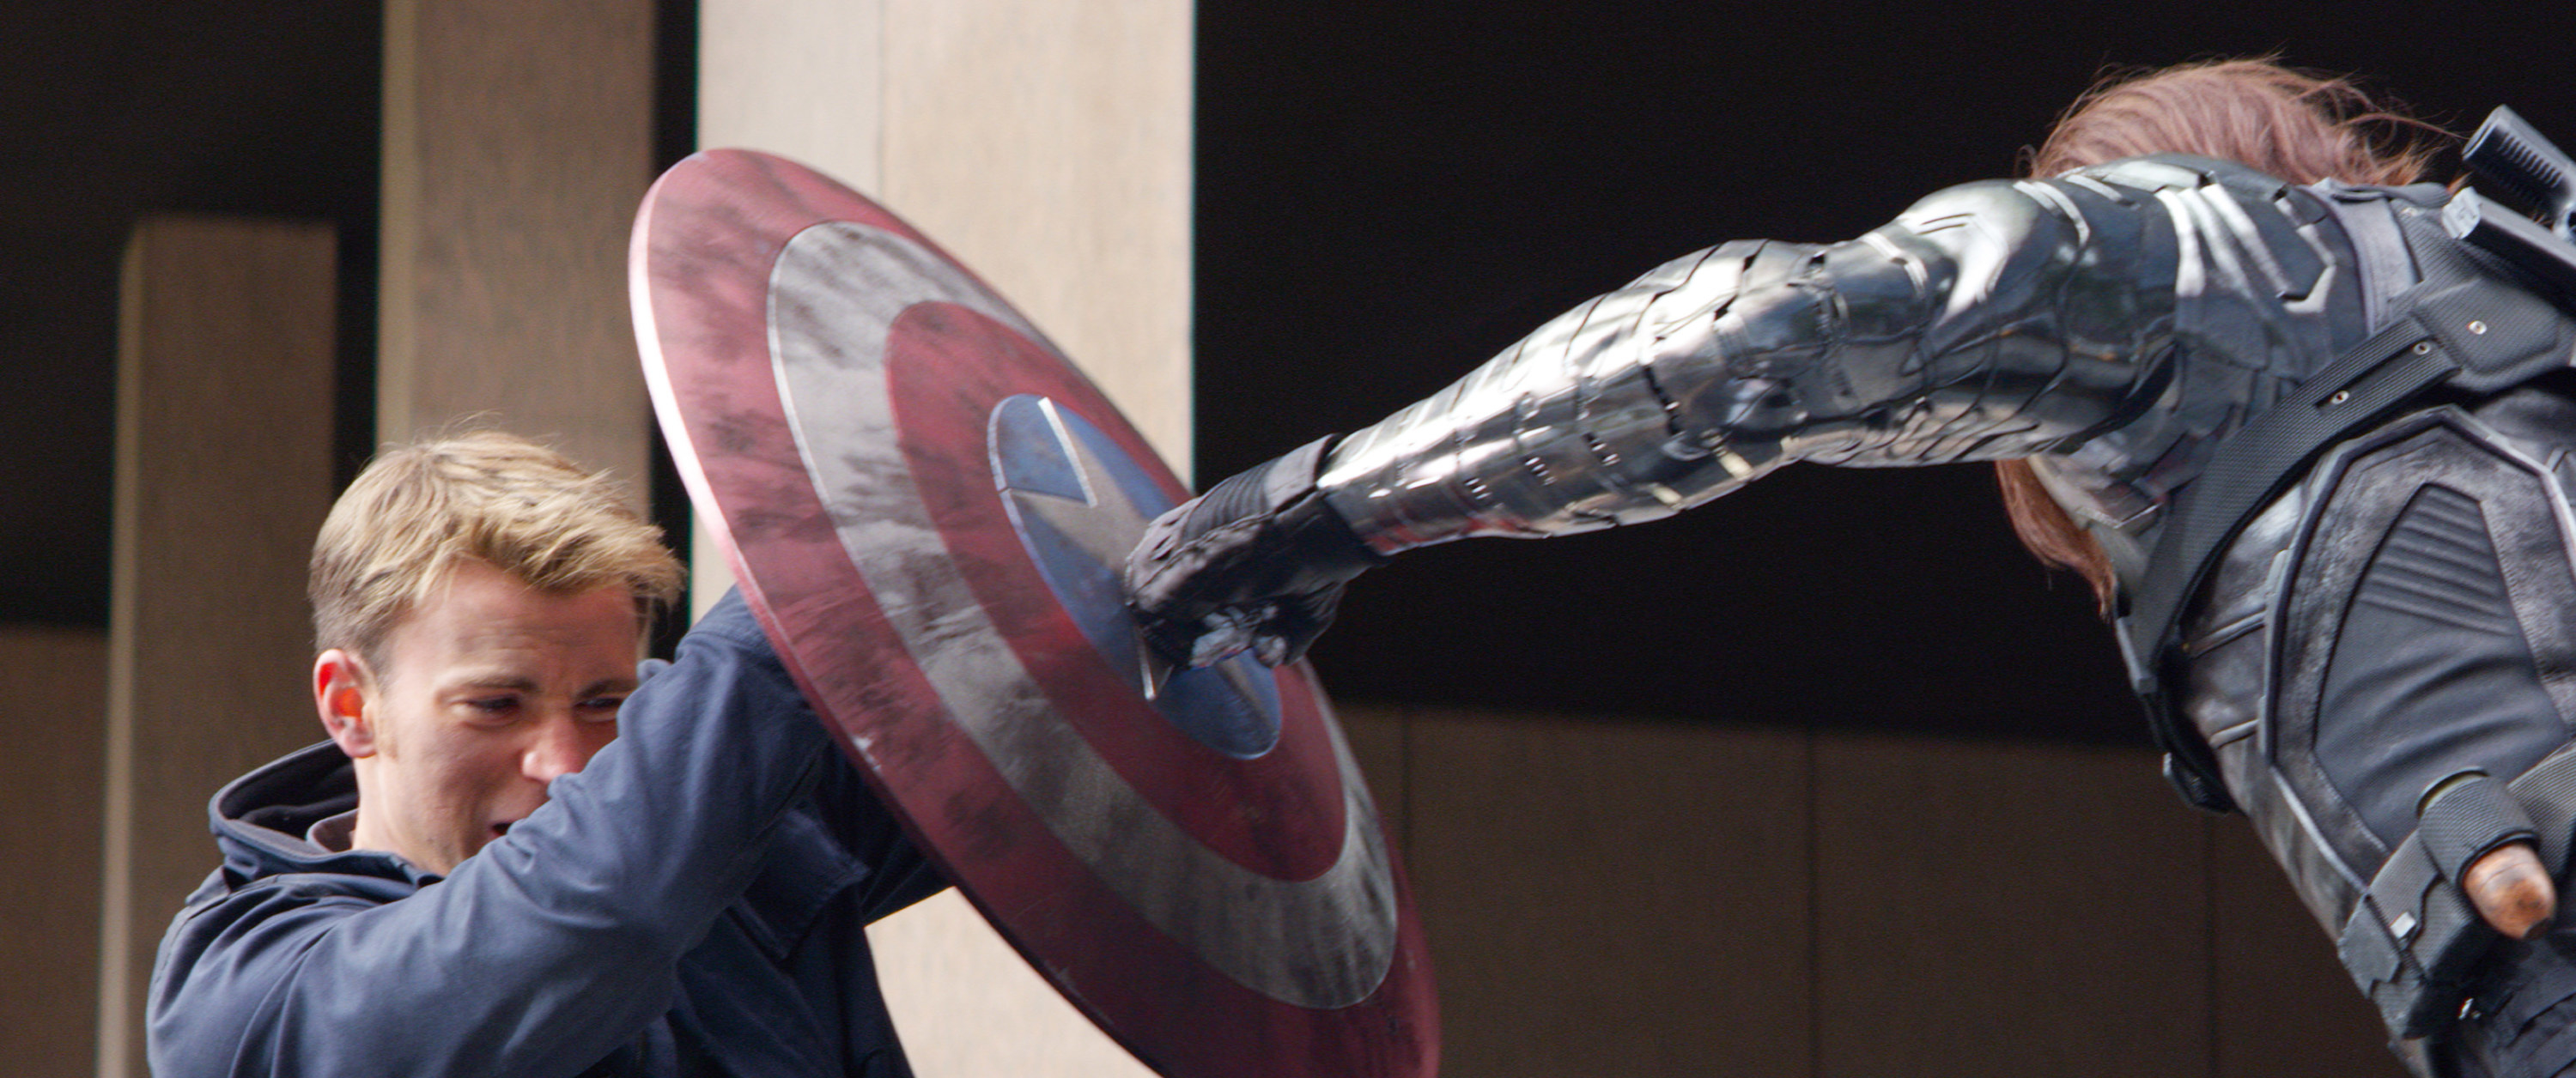 Captain America blocks a punch from The Winter Soldier with his shield.